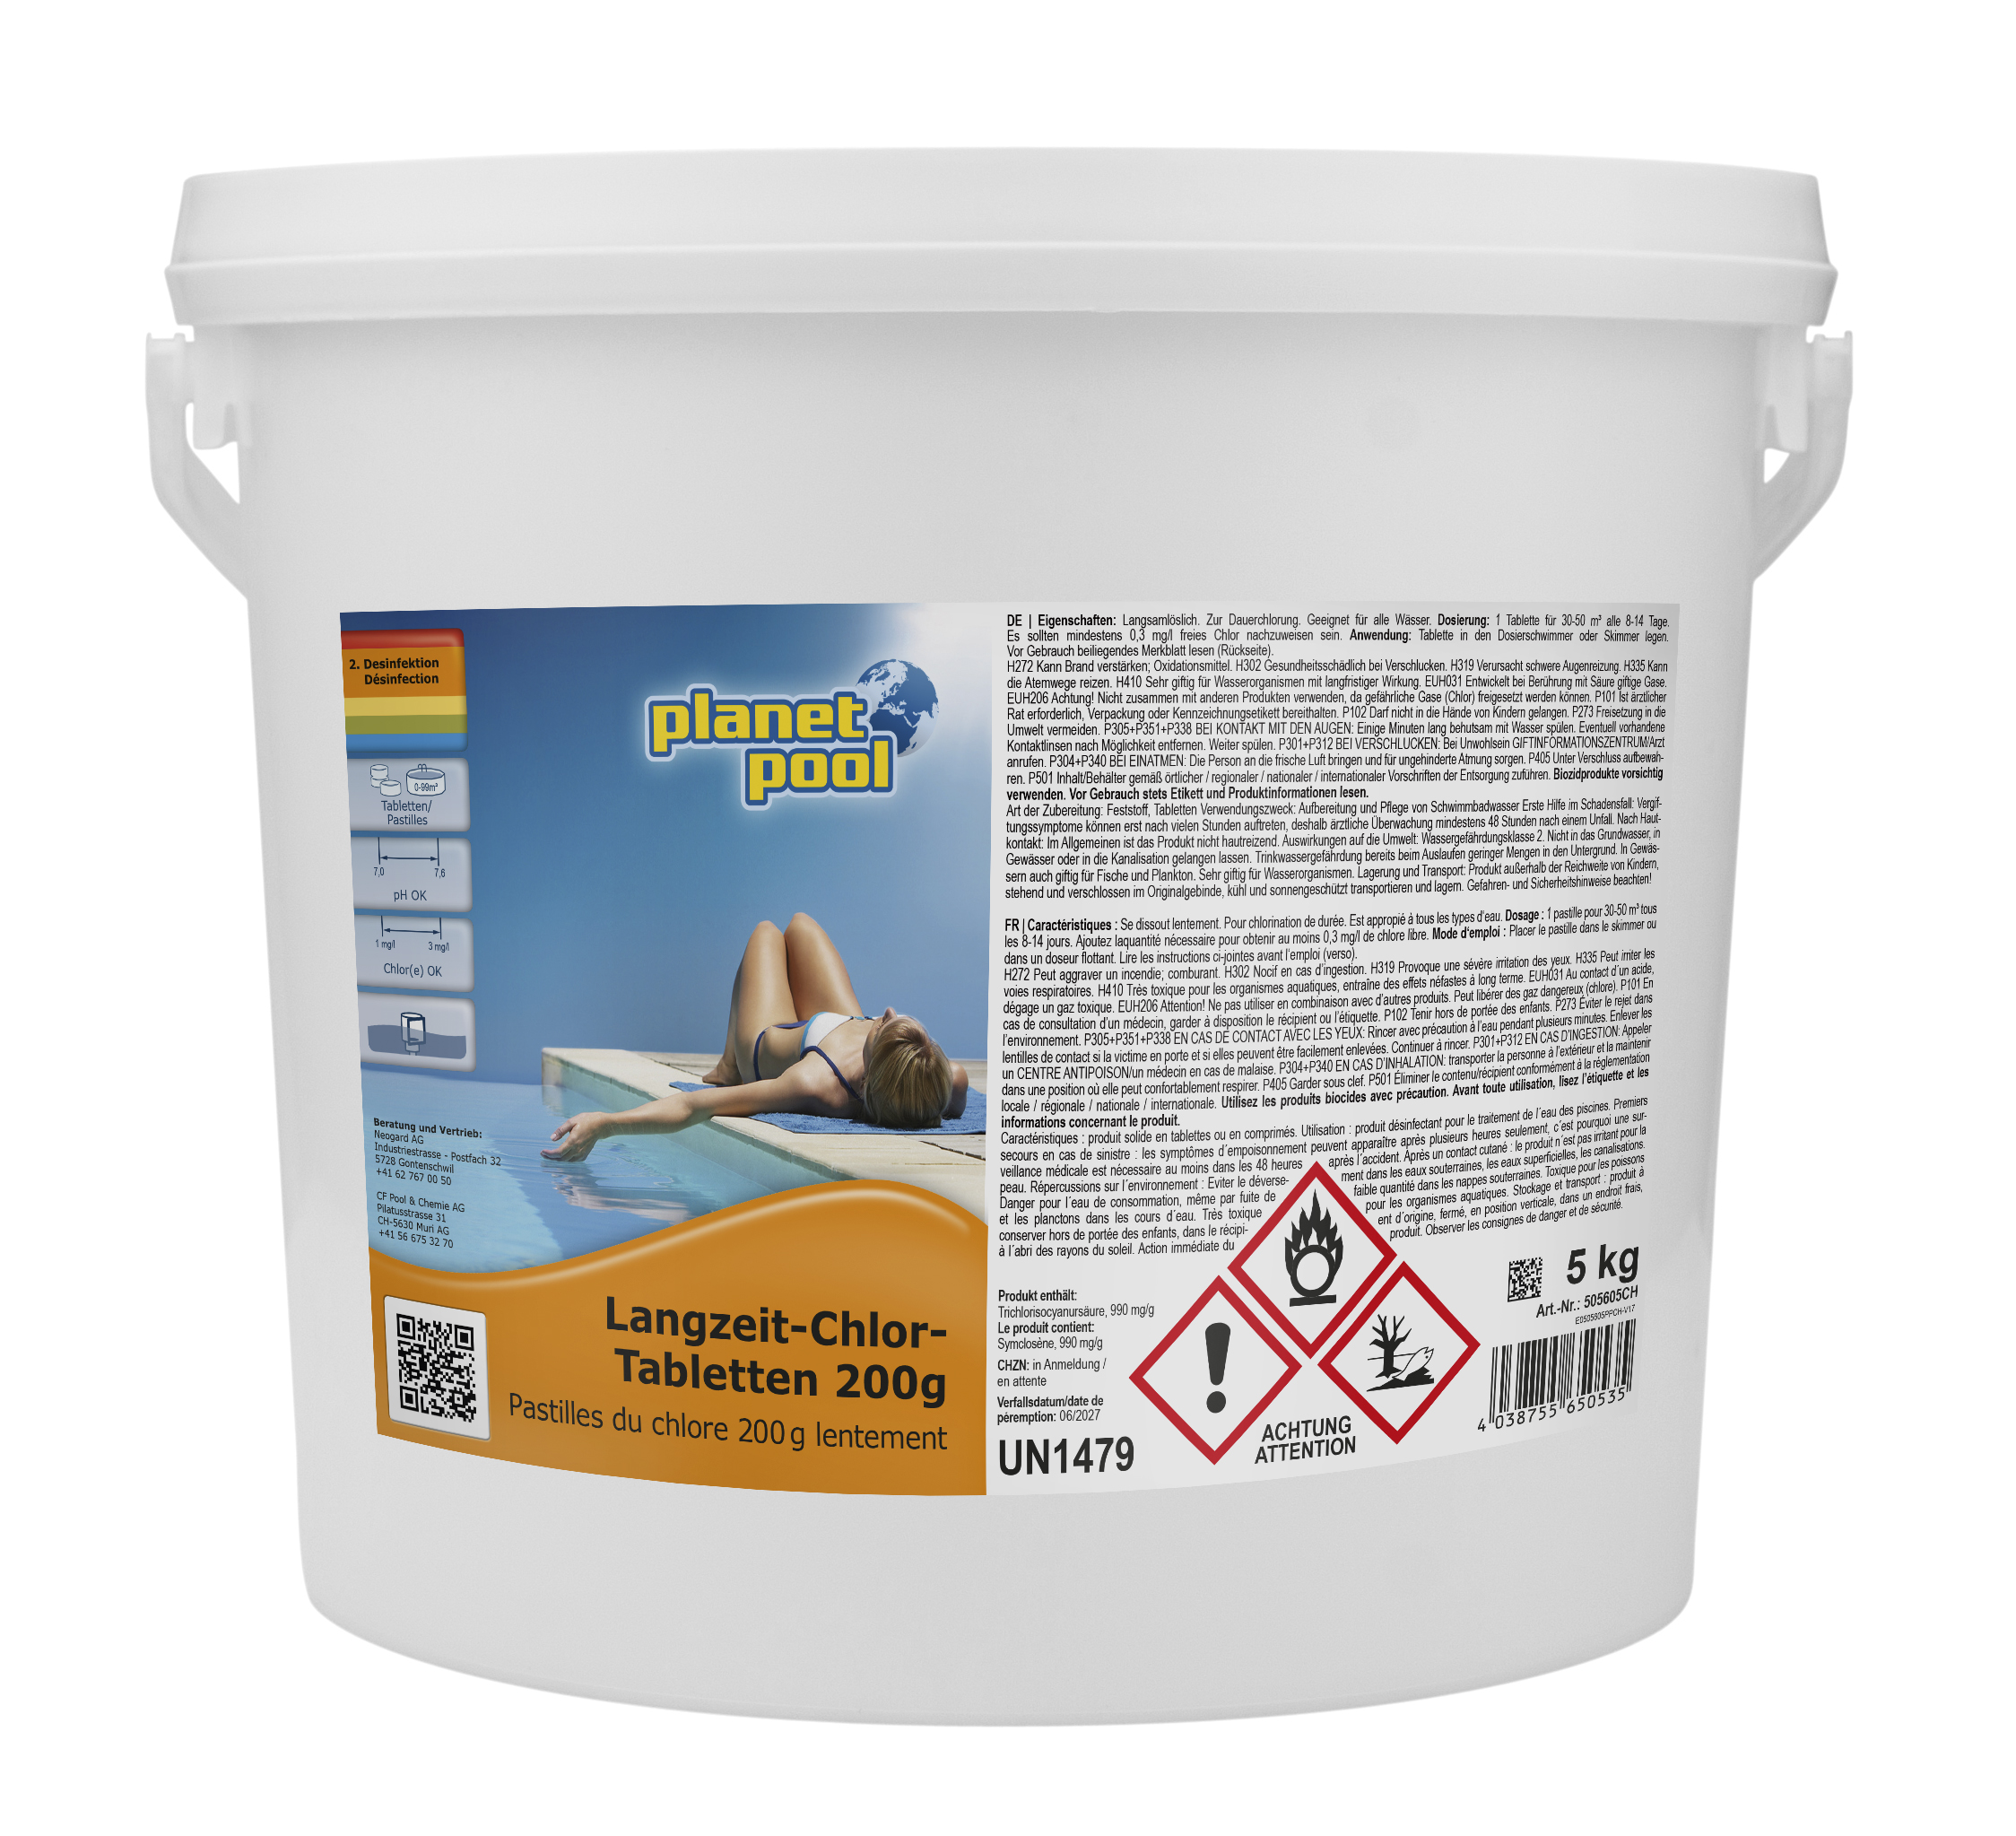 PLANET POOL Langzeit-Chlor-Tabletten 200 g, 5 kg